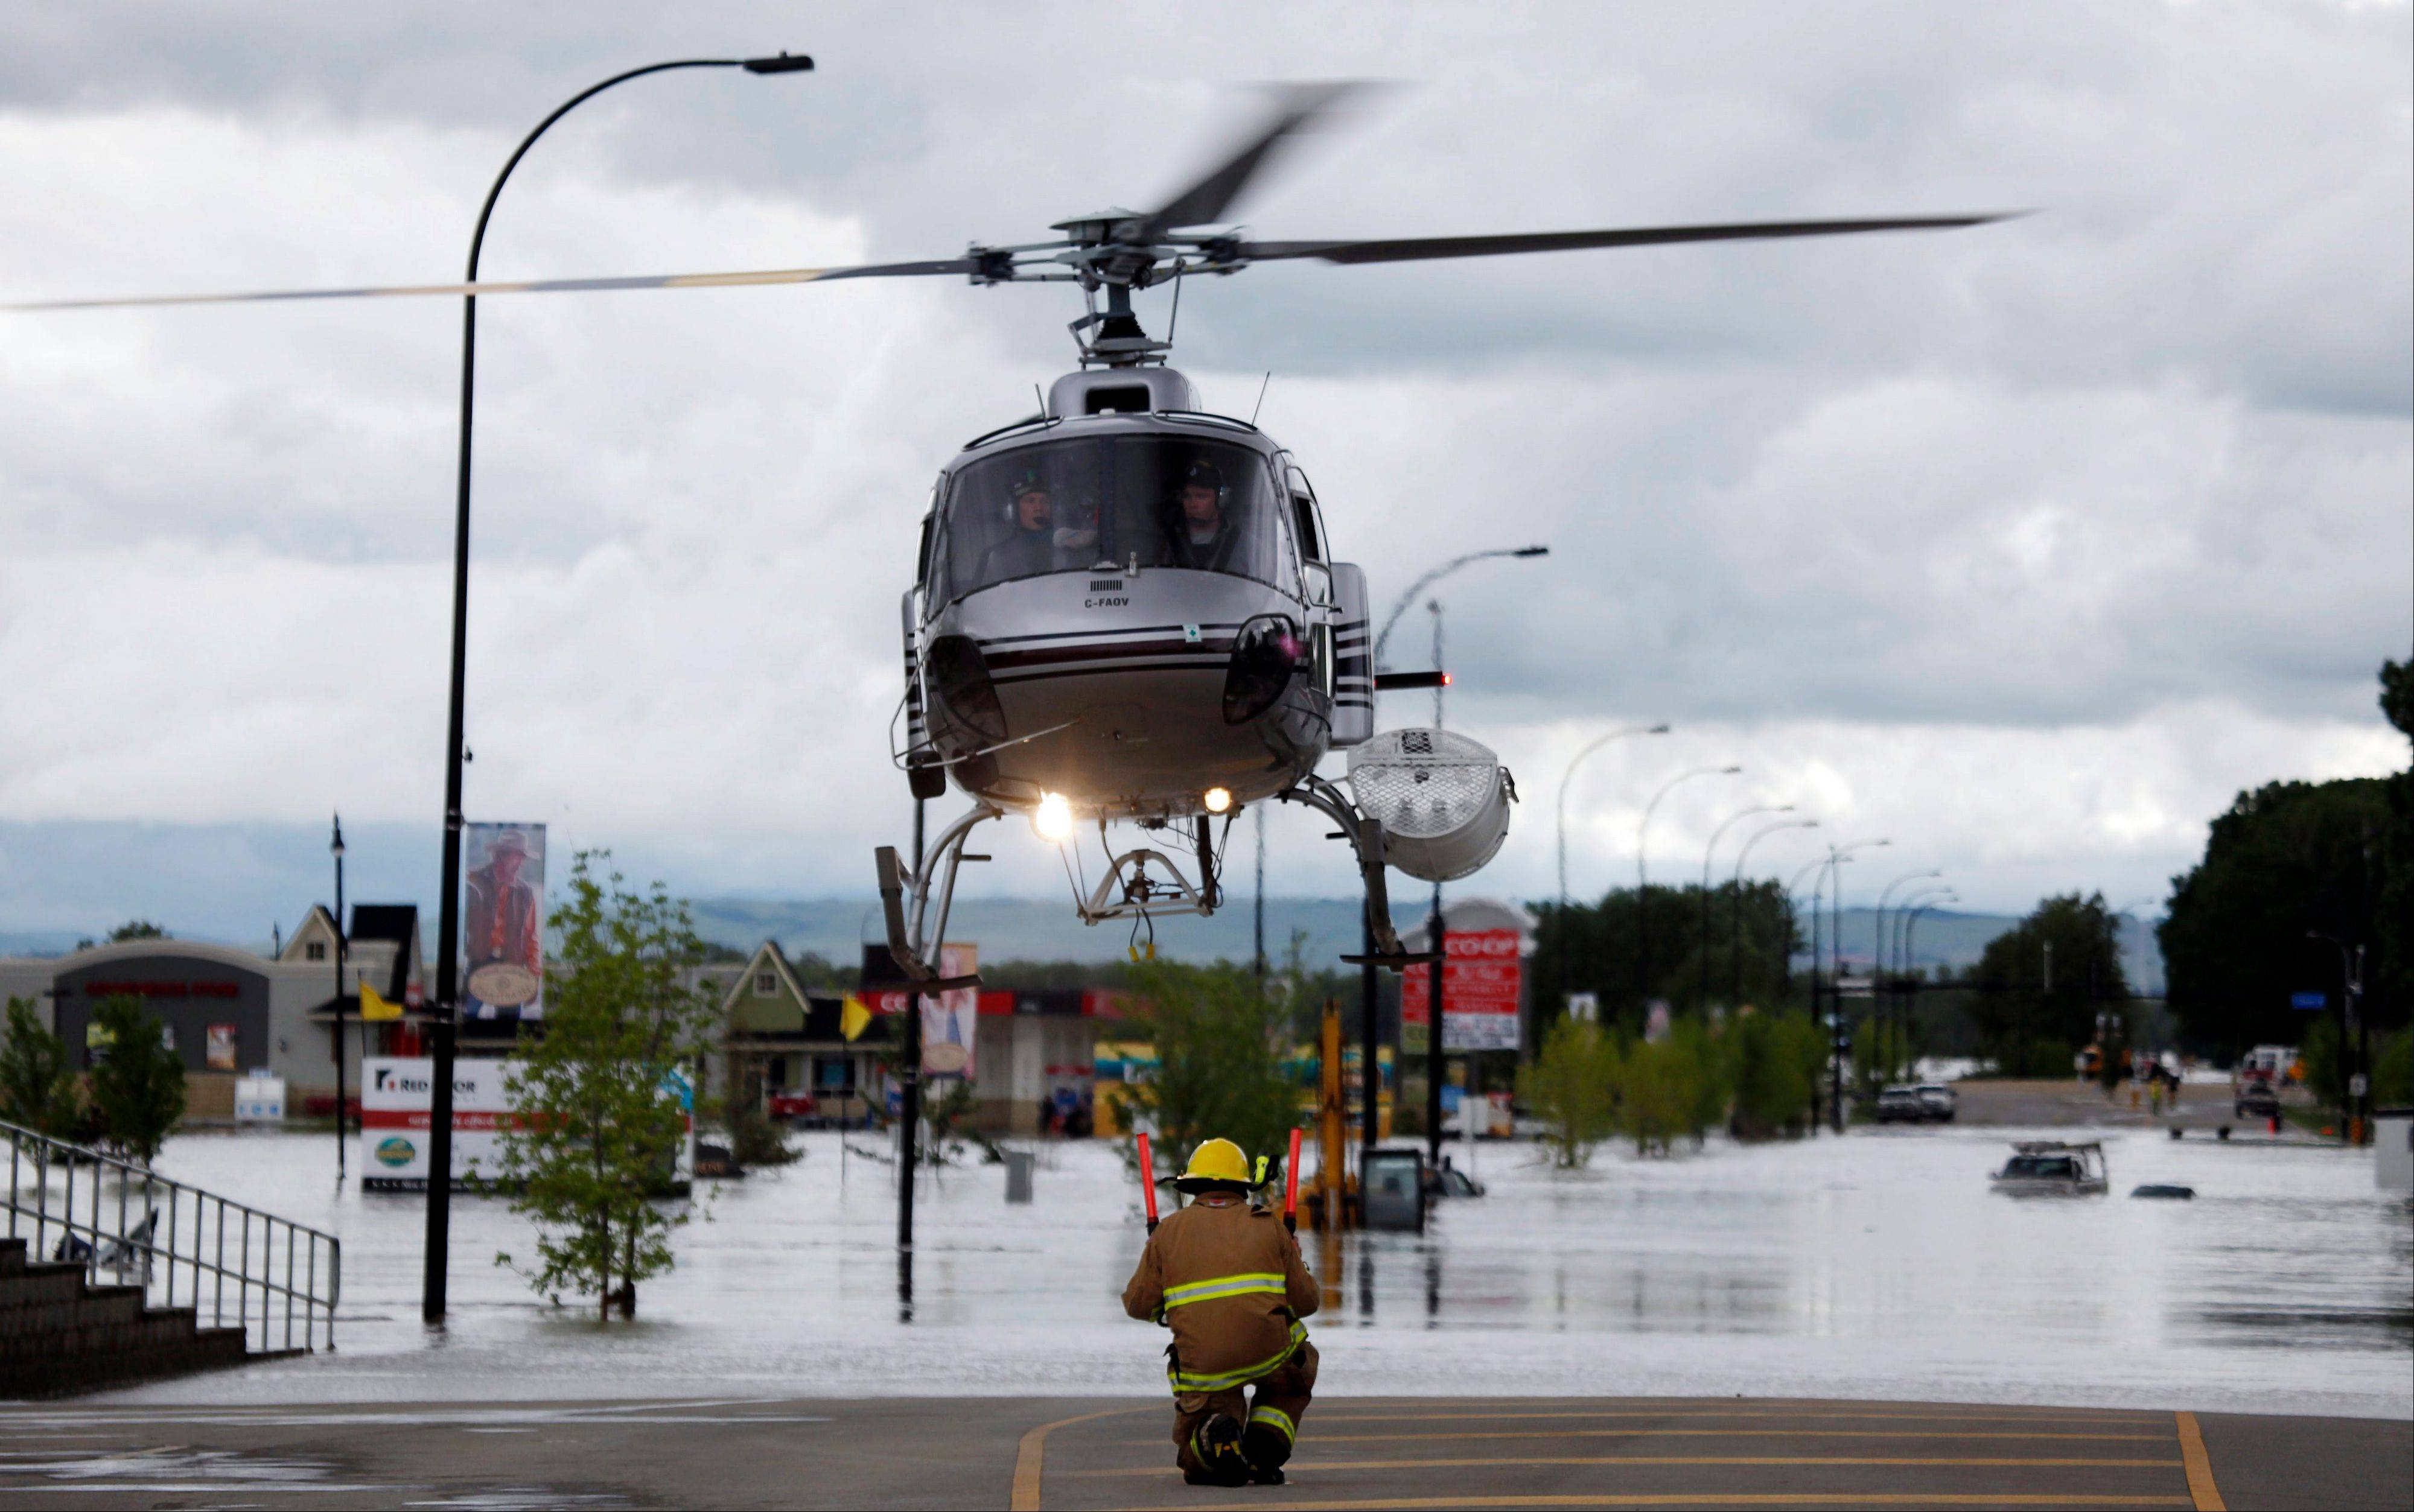 A helicopter carrying evacuated residents lands on a road in High River, Alta., Thursday, June 20, 2013. Calgary city officials say as many as 100,000 people could be forced from their homes due to heavy flooding in western Canada.